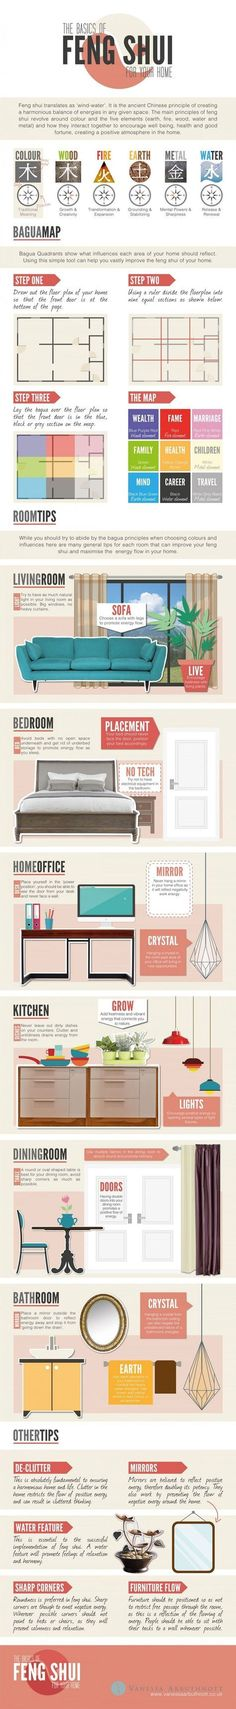 Arrangement and sizing for pillows on queen and king bed for Basic feng shui principles